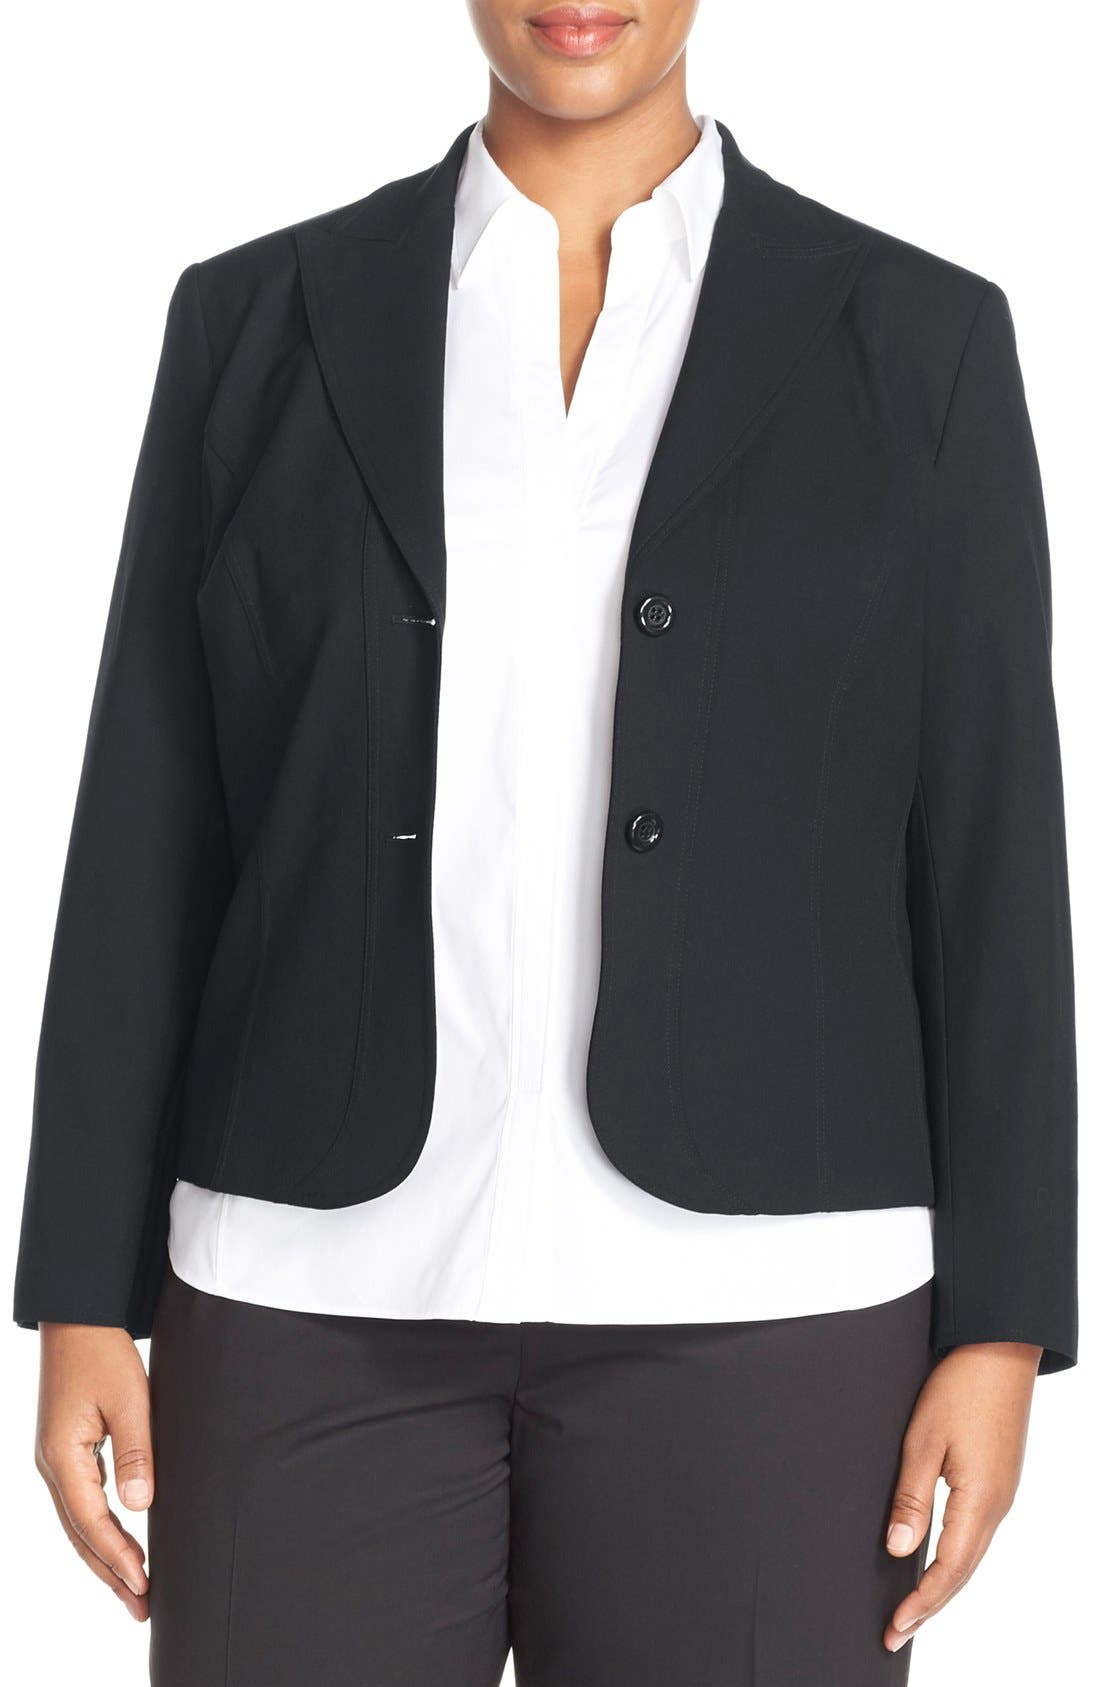 Alternate Image 1 Selected - Lafayette 148 New York 'Gladstone' Stretch Wool Jacket (Plus Size) (Nordstrom Exclusive)